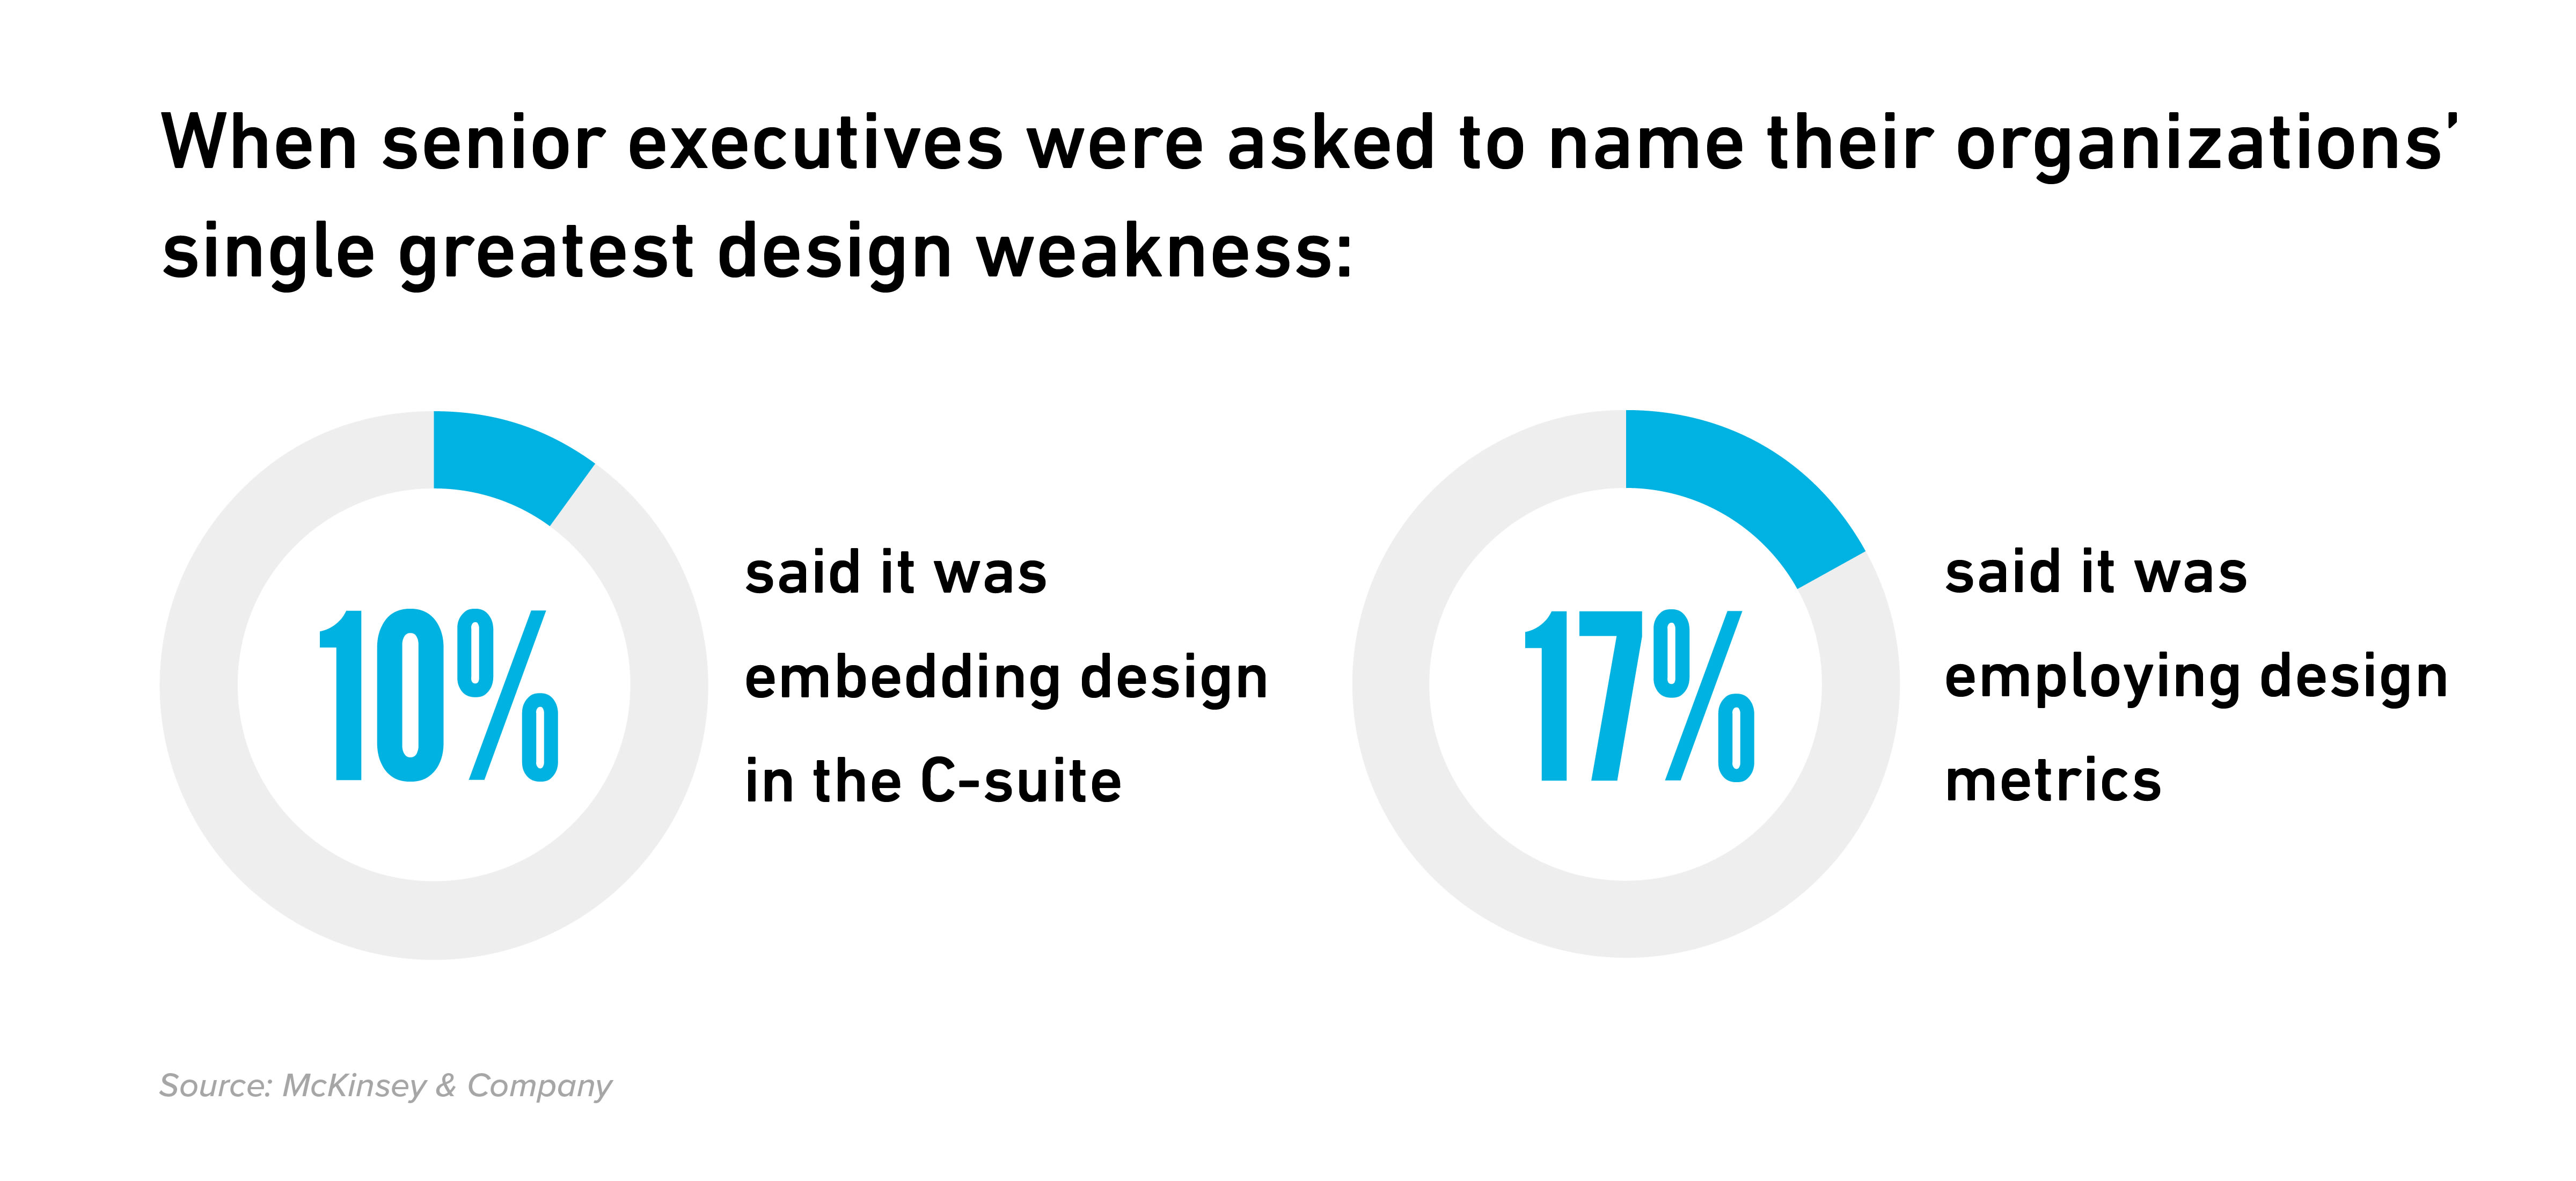 Visual communication design in the workplace stats